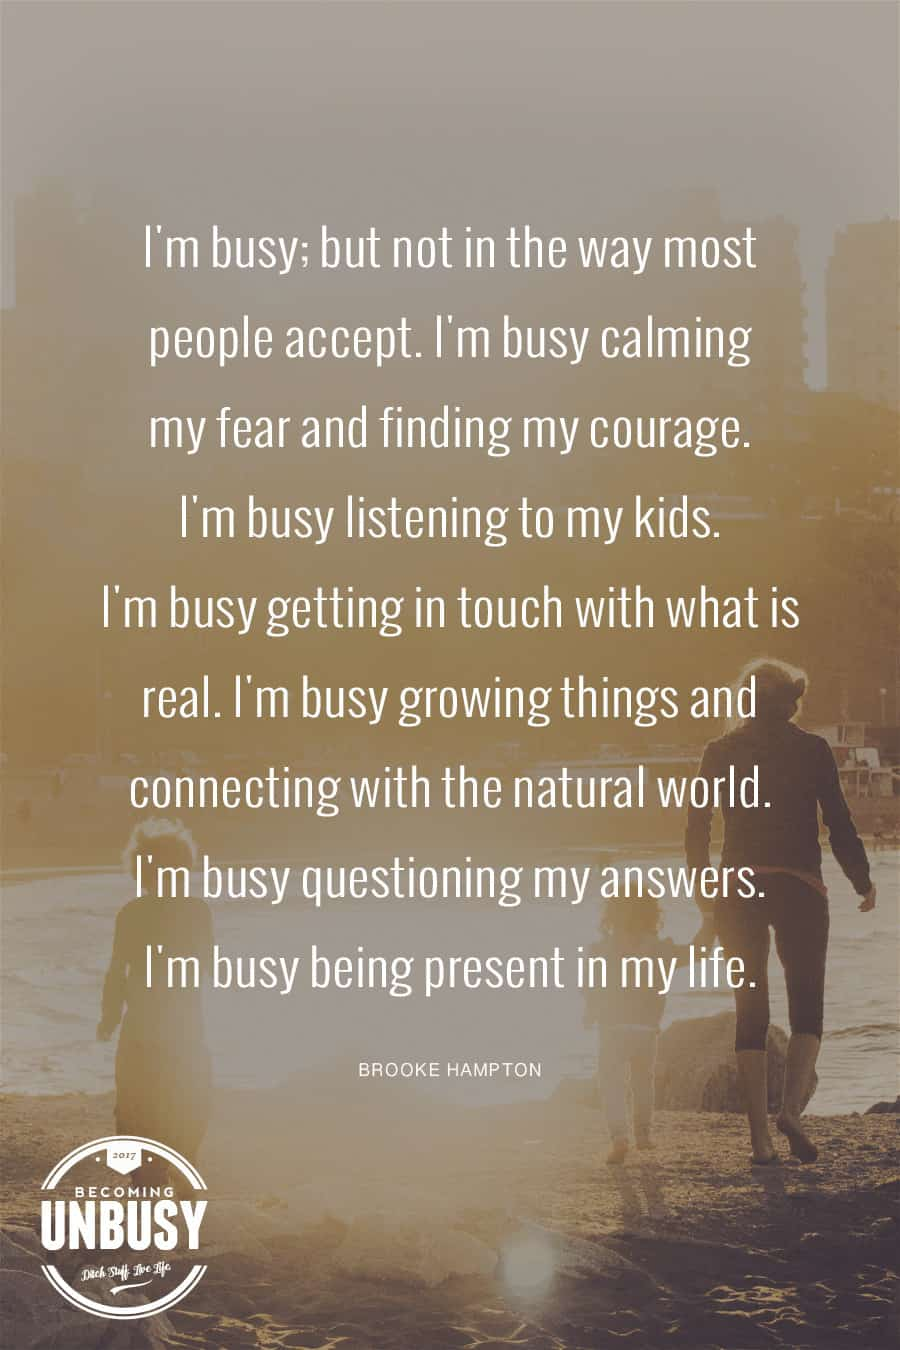 I'm busy; but not in the way most people accept. I'm busy calming my fear and finding my courage. I'm busy listening to my kids. I'm busy getting in touch with what is real. I'm busy growing things and connecting with the natural world. I'm busy questioning my answers. I'm busy being present in my life. #poems #lifequotes #poetry *Loving this collection of 12 Poems About Life For a Beautiful Life Well-Lived